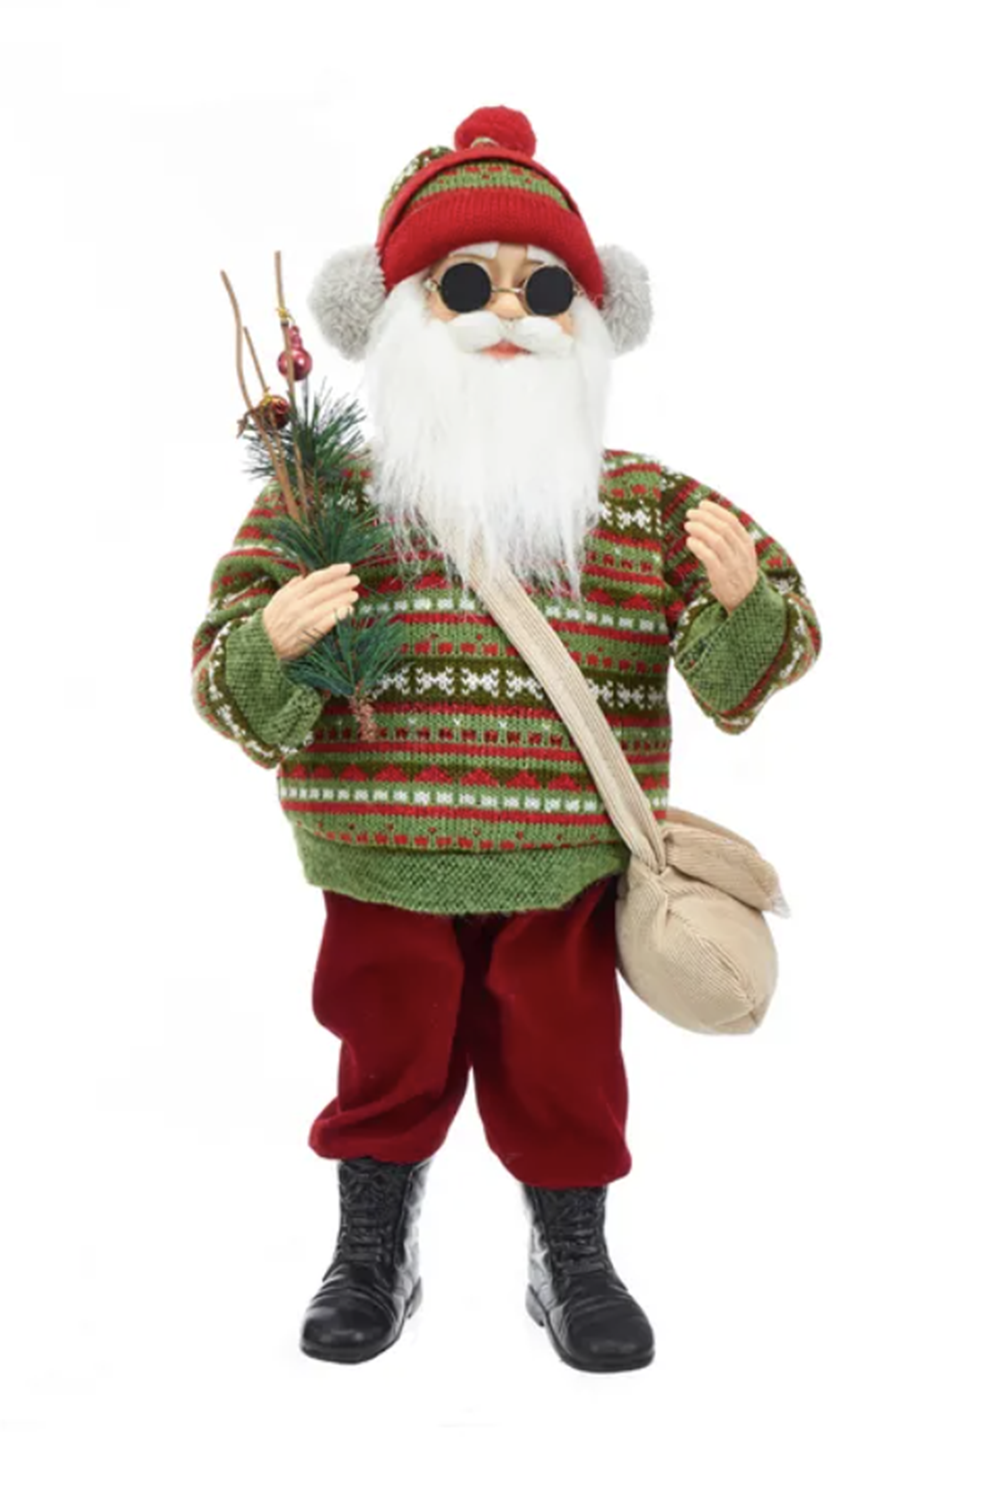 Cool Yule Santa Figure